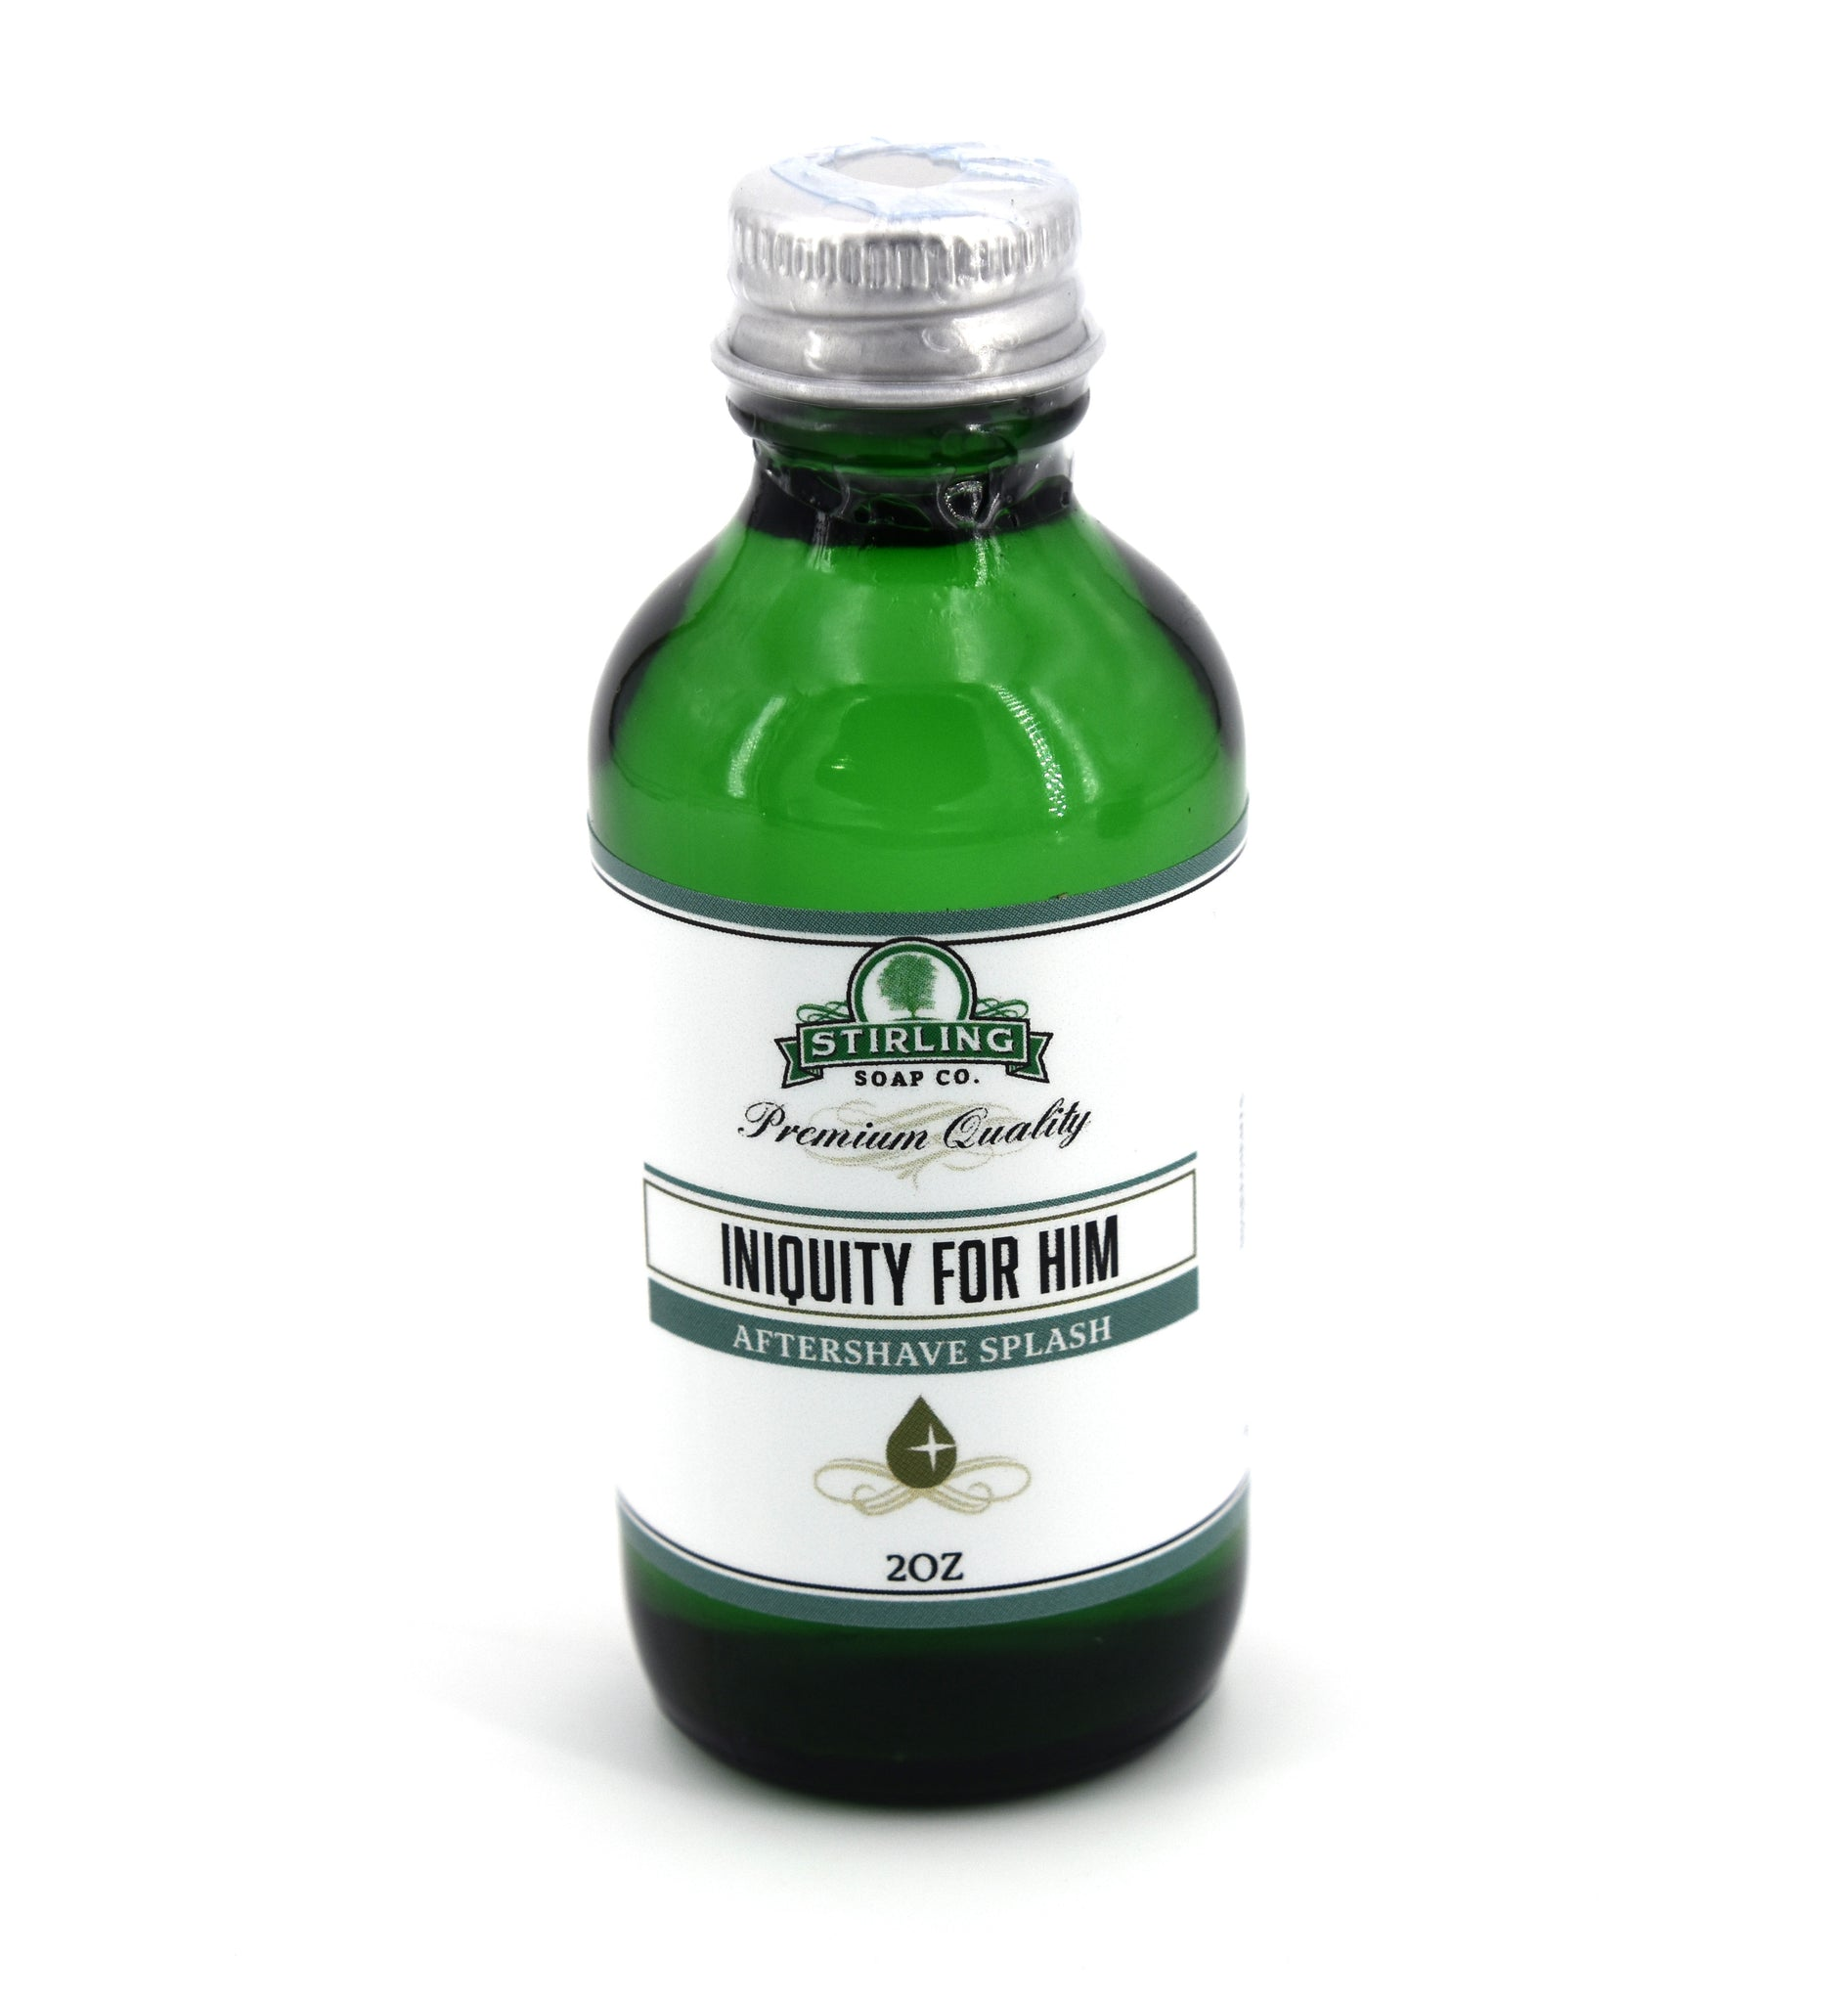 Iniquity for Him - Aftershave Splash (2oz)